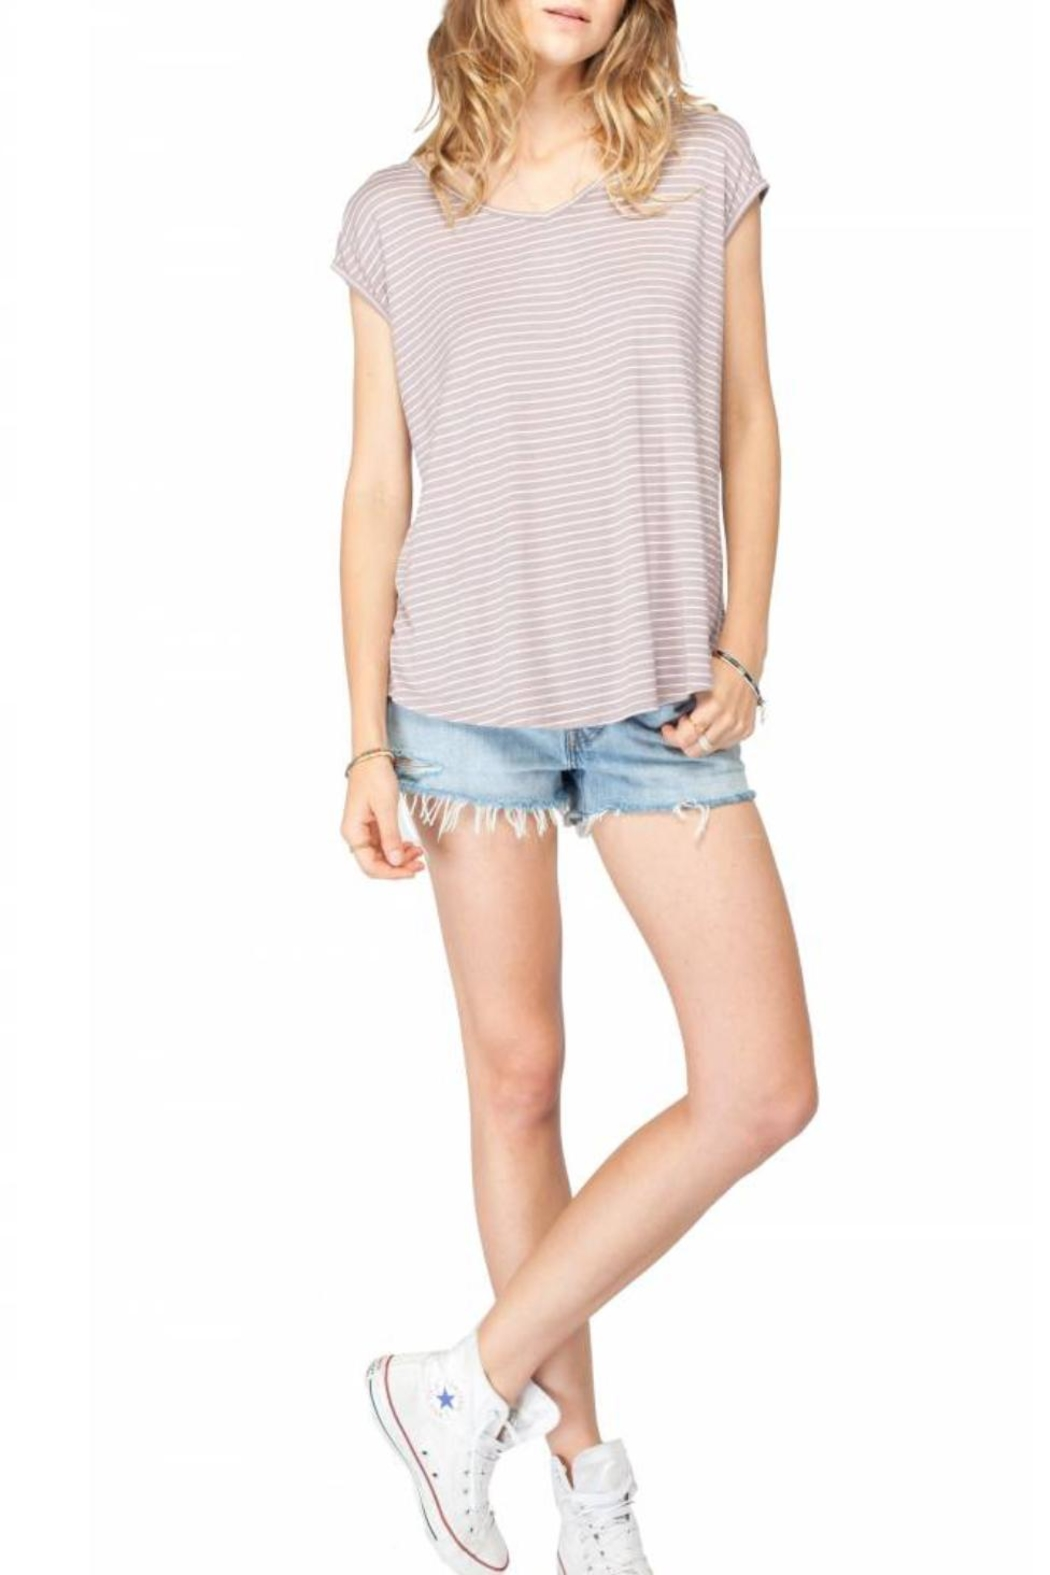 Gentle Fawn Striped Short Sleeve Top - Main Image